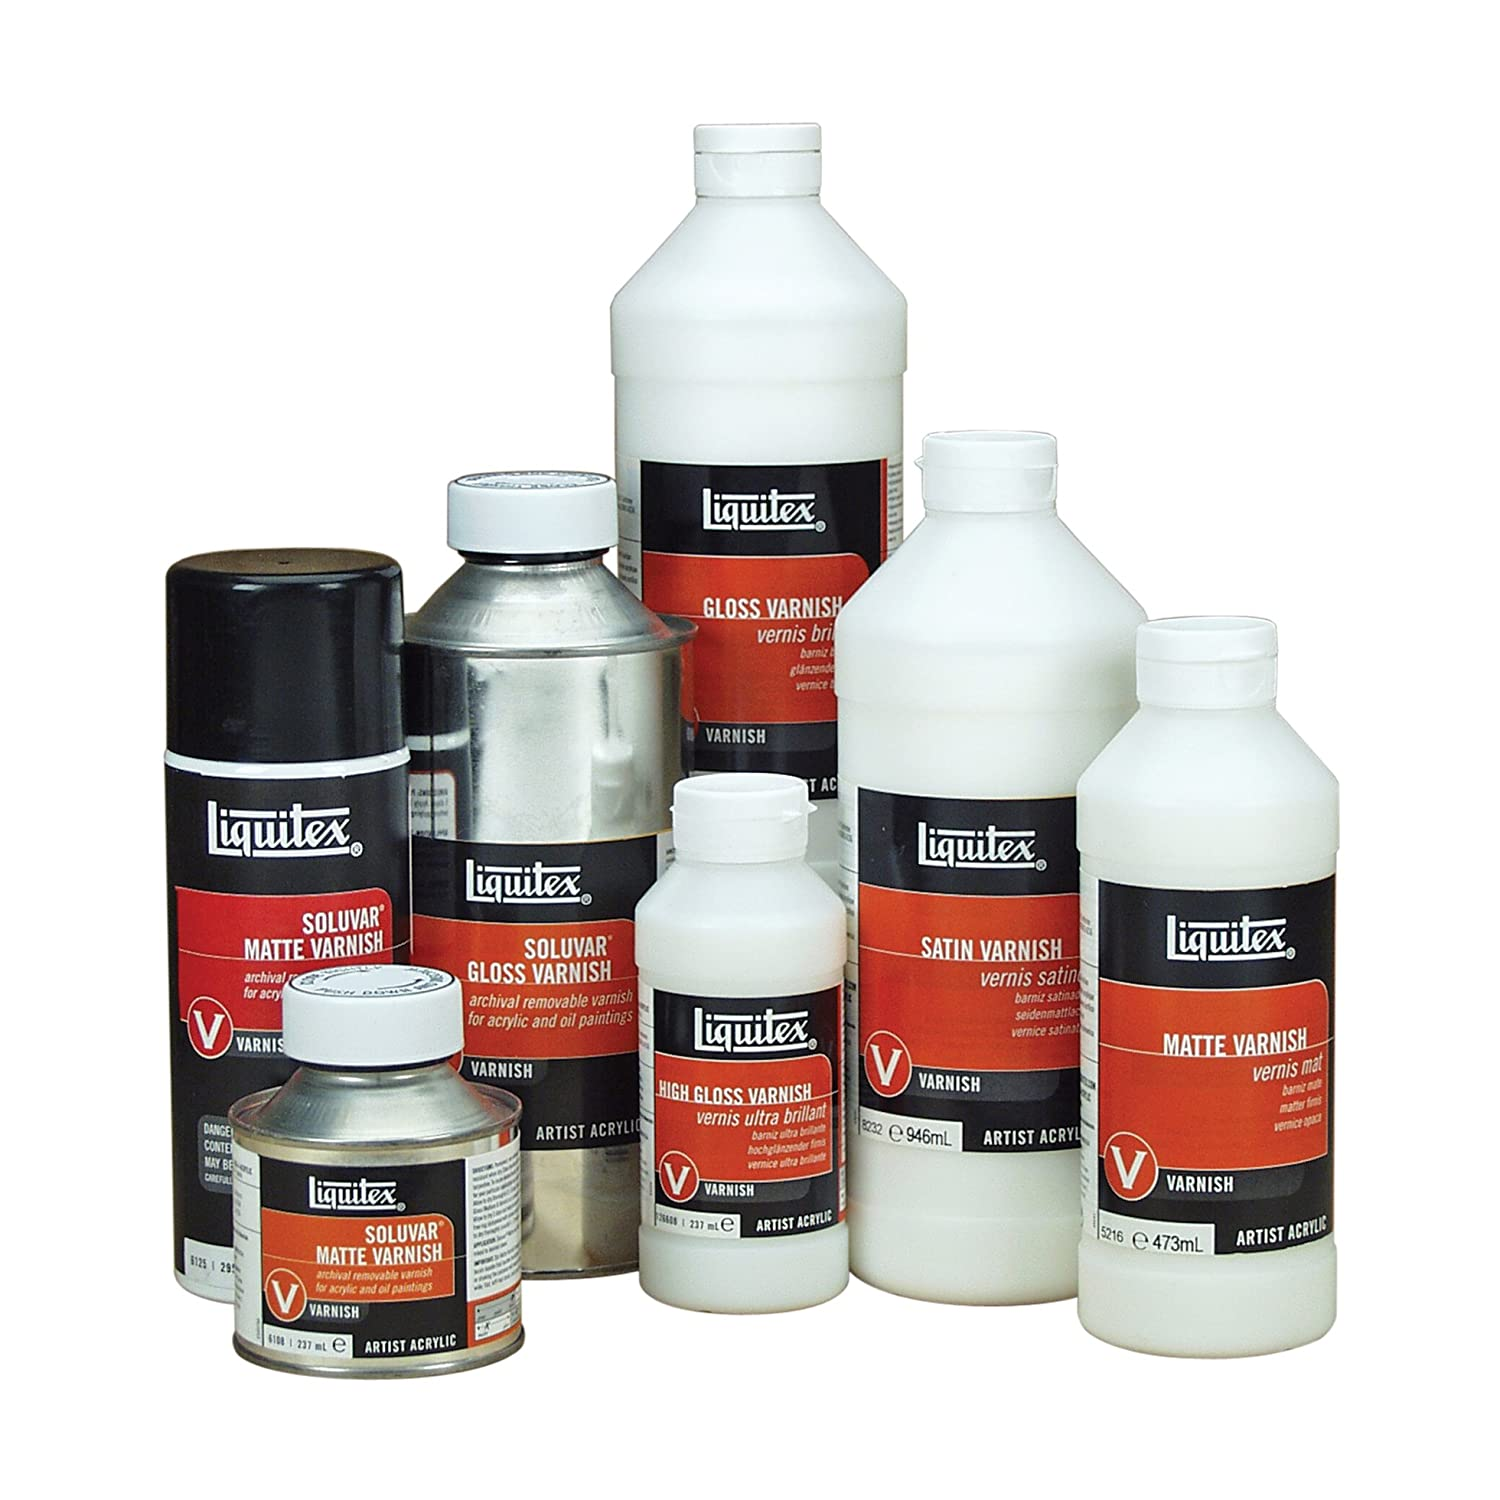 Amazon.com: Liquitex 6208 Professional Gloss Varnish, 8-oz: Arts ...